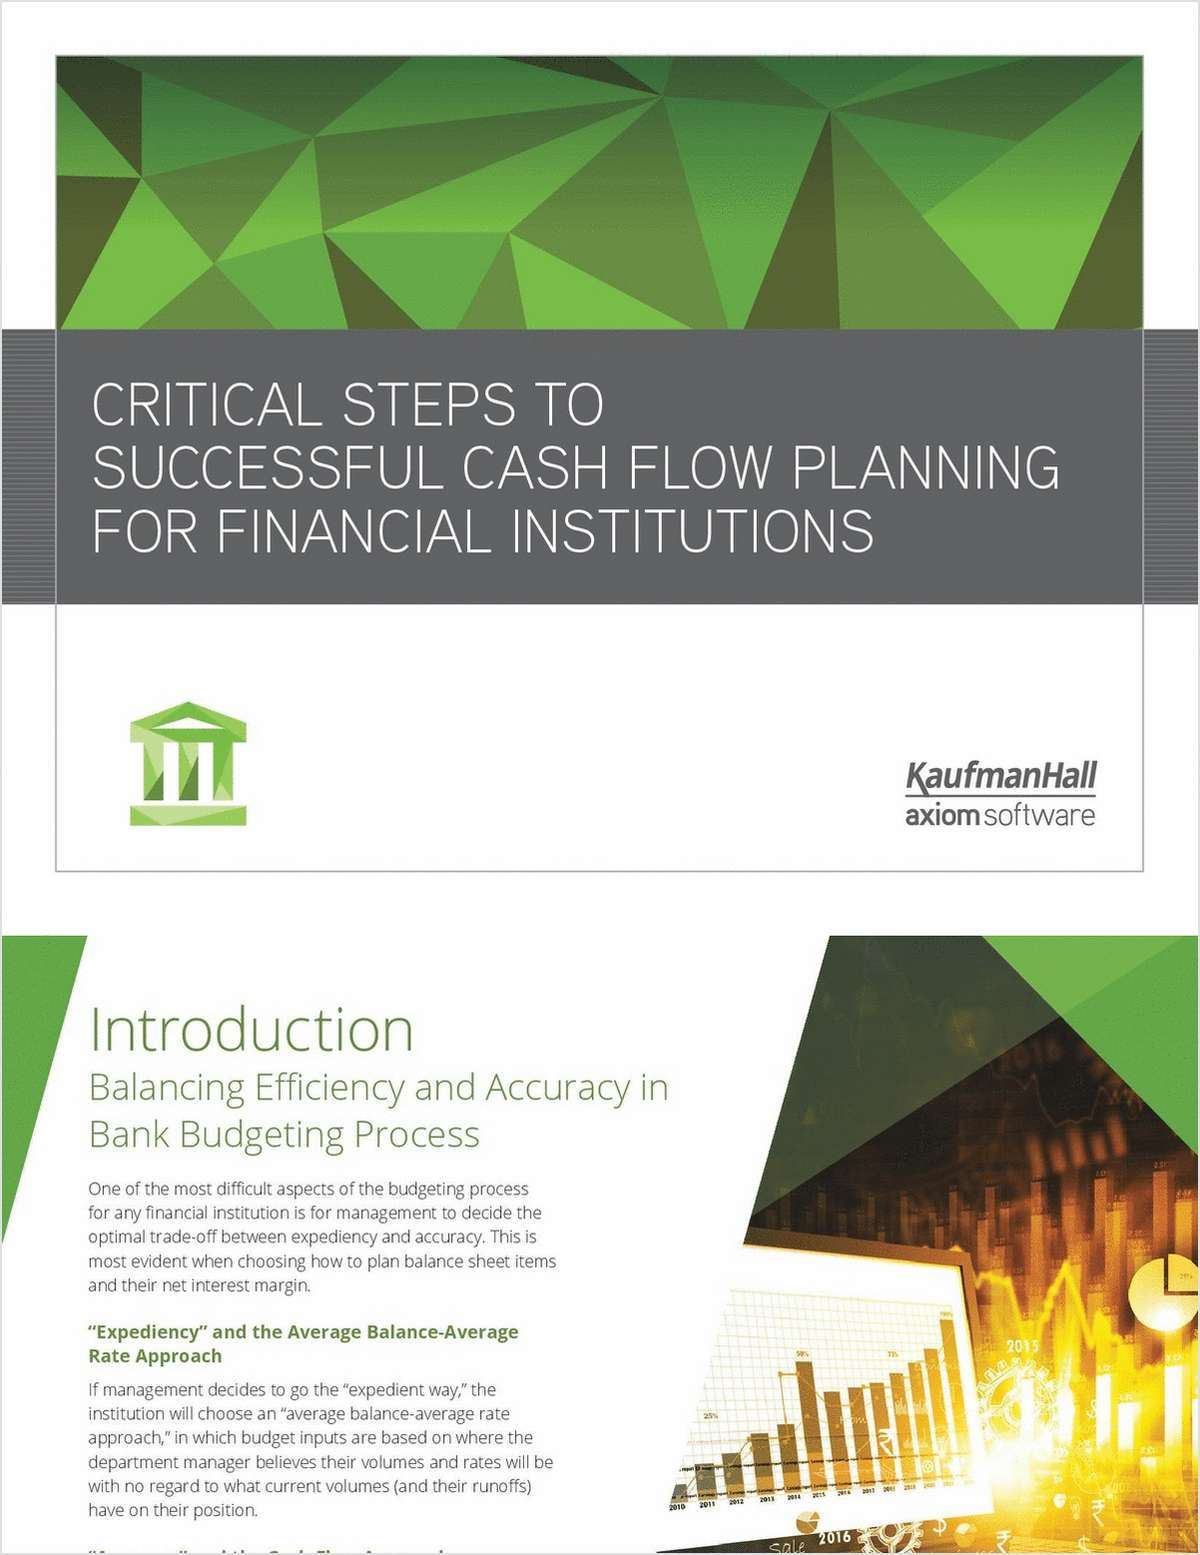 Critical Steps to Successful Cash Flow Planning For Financial Institutions